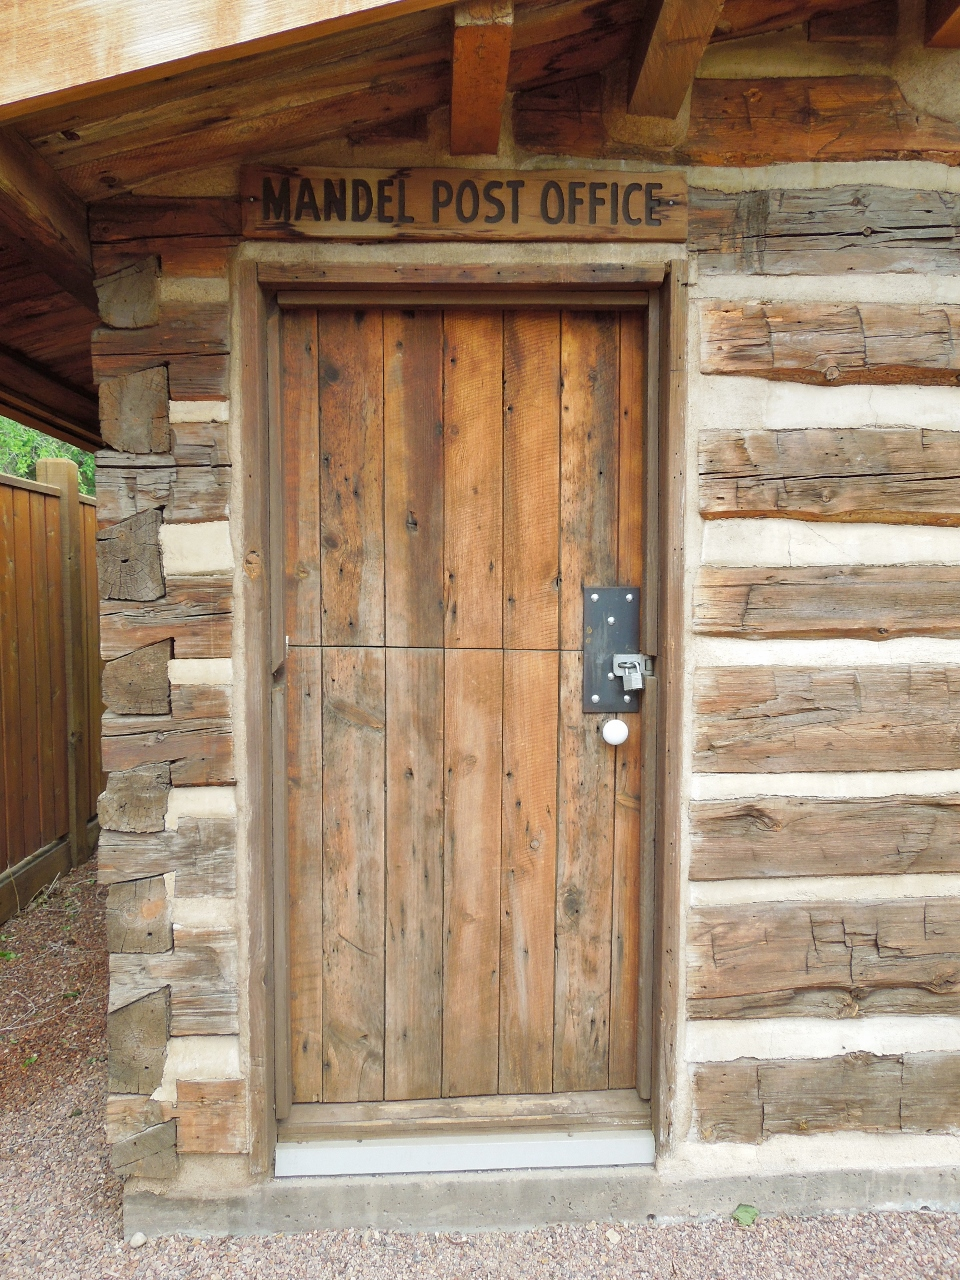 Mandel Post Office Sign